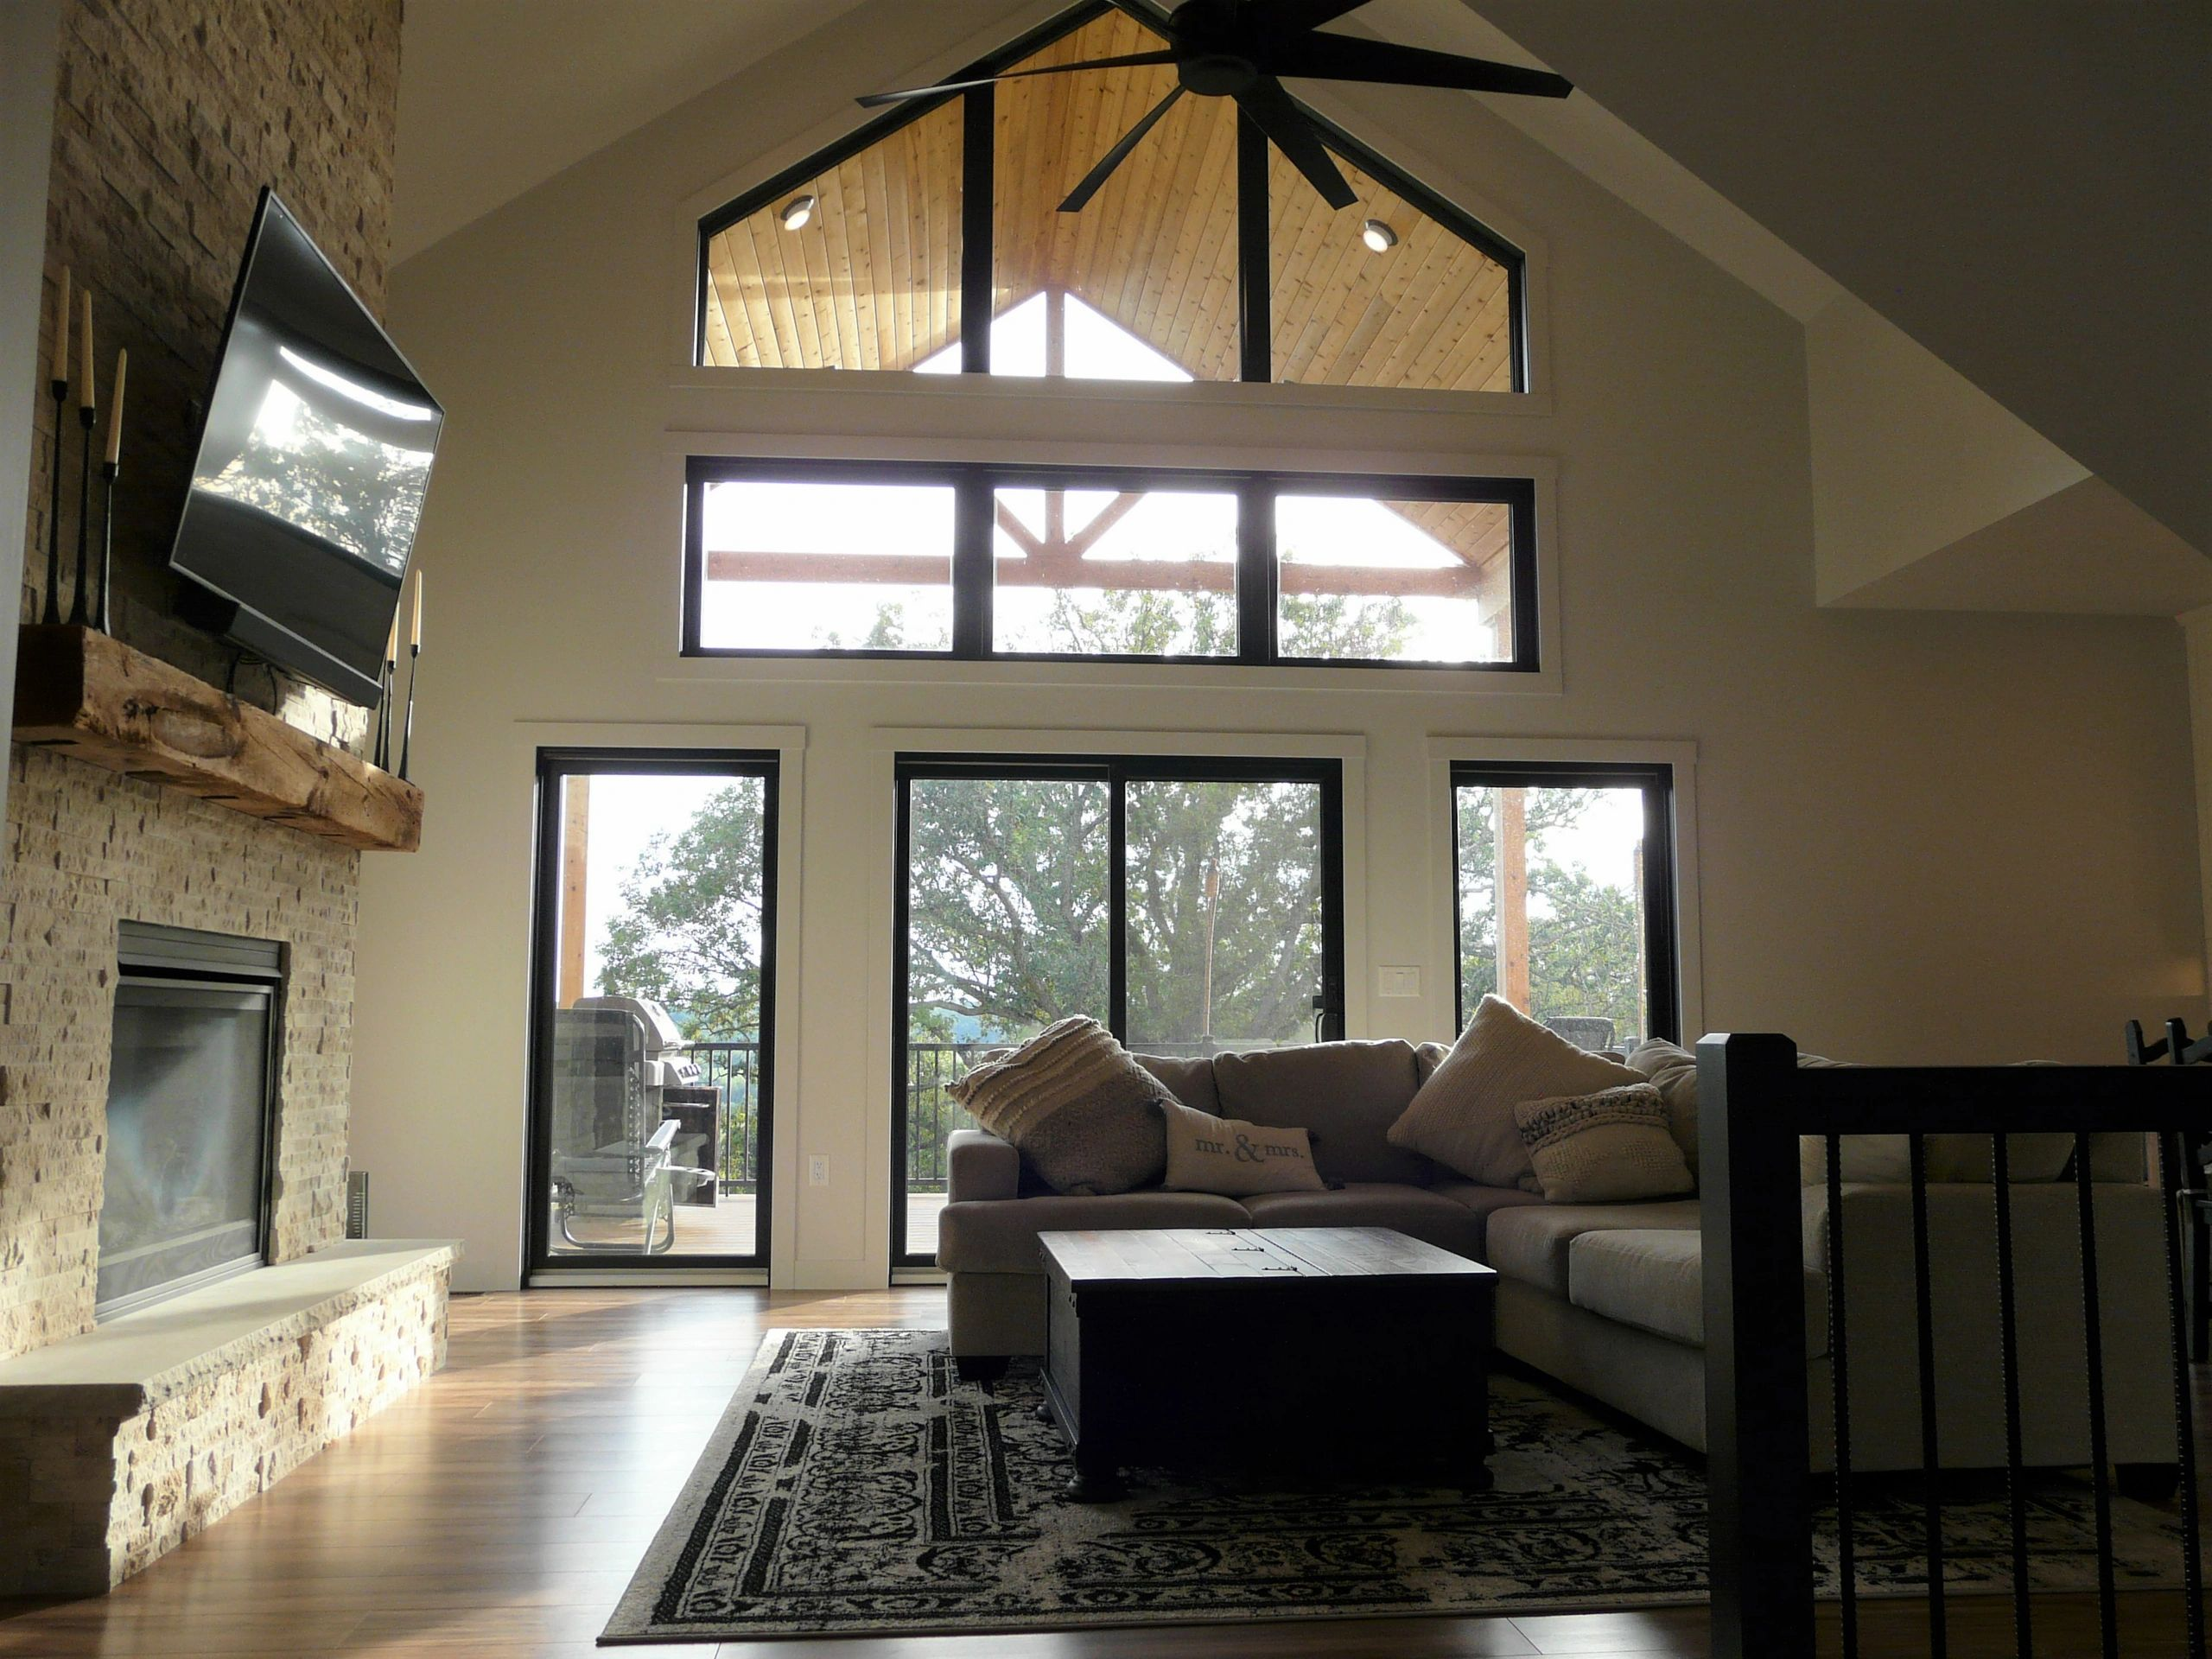 Custom home design of great room with a frame windows and covered deck.